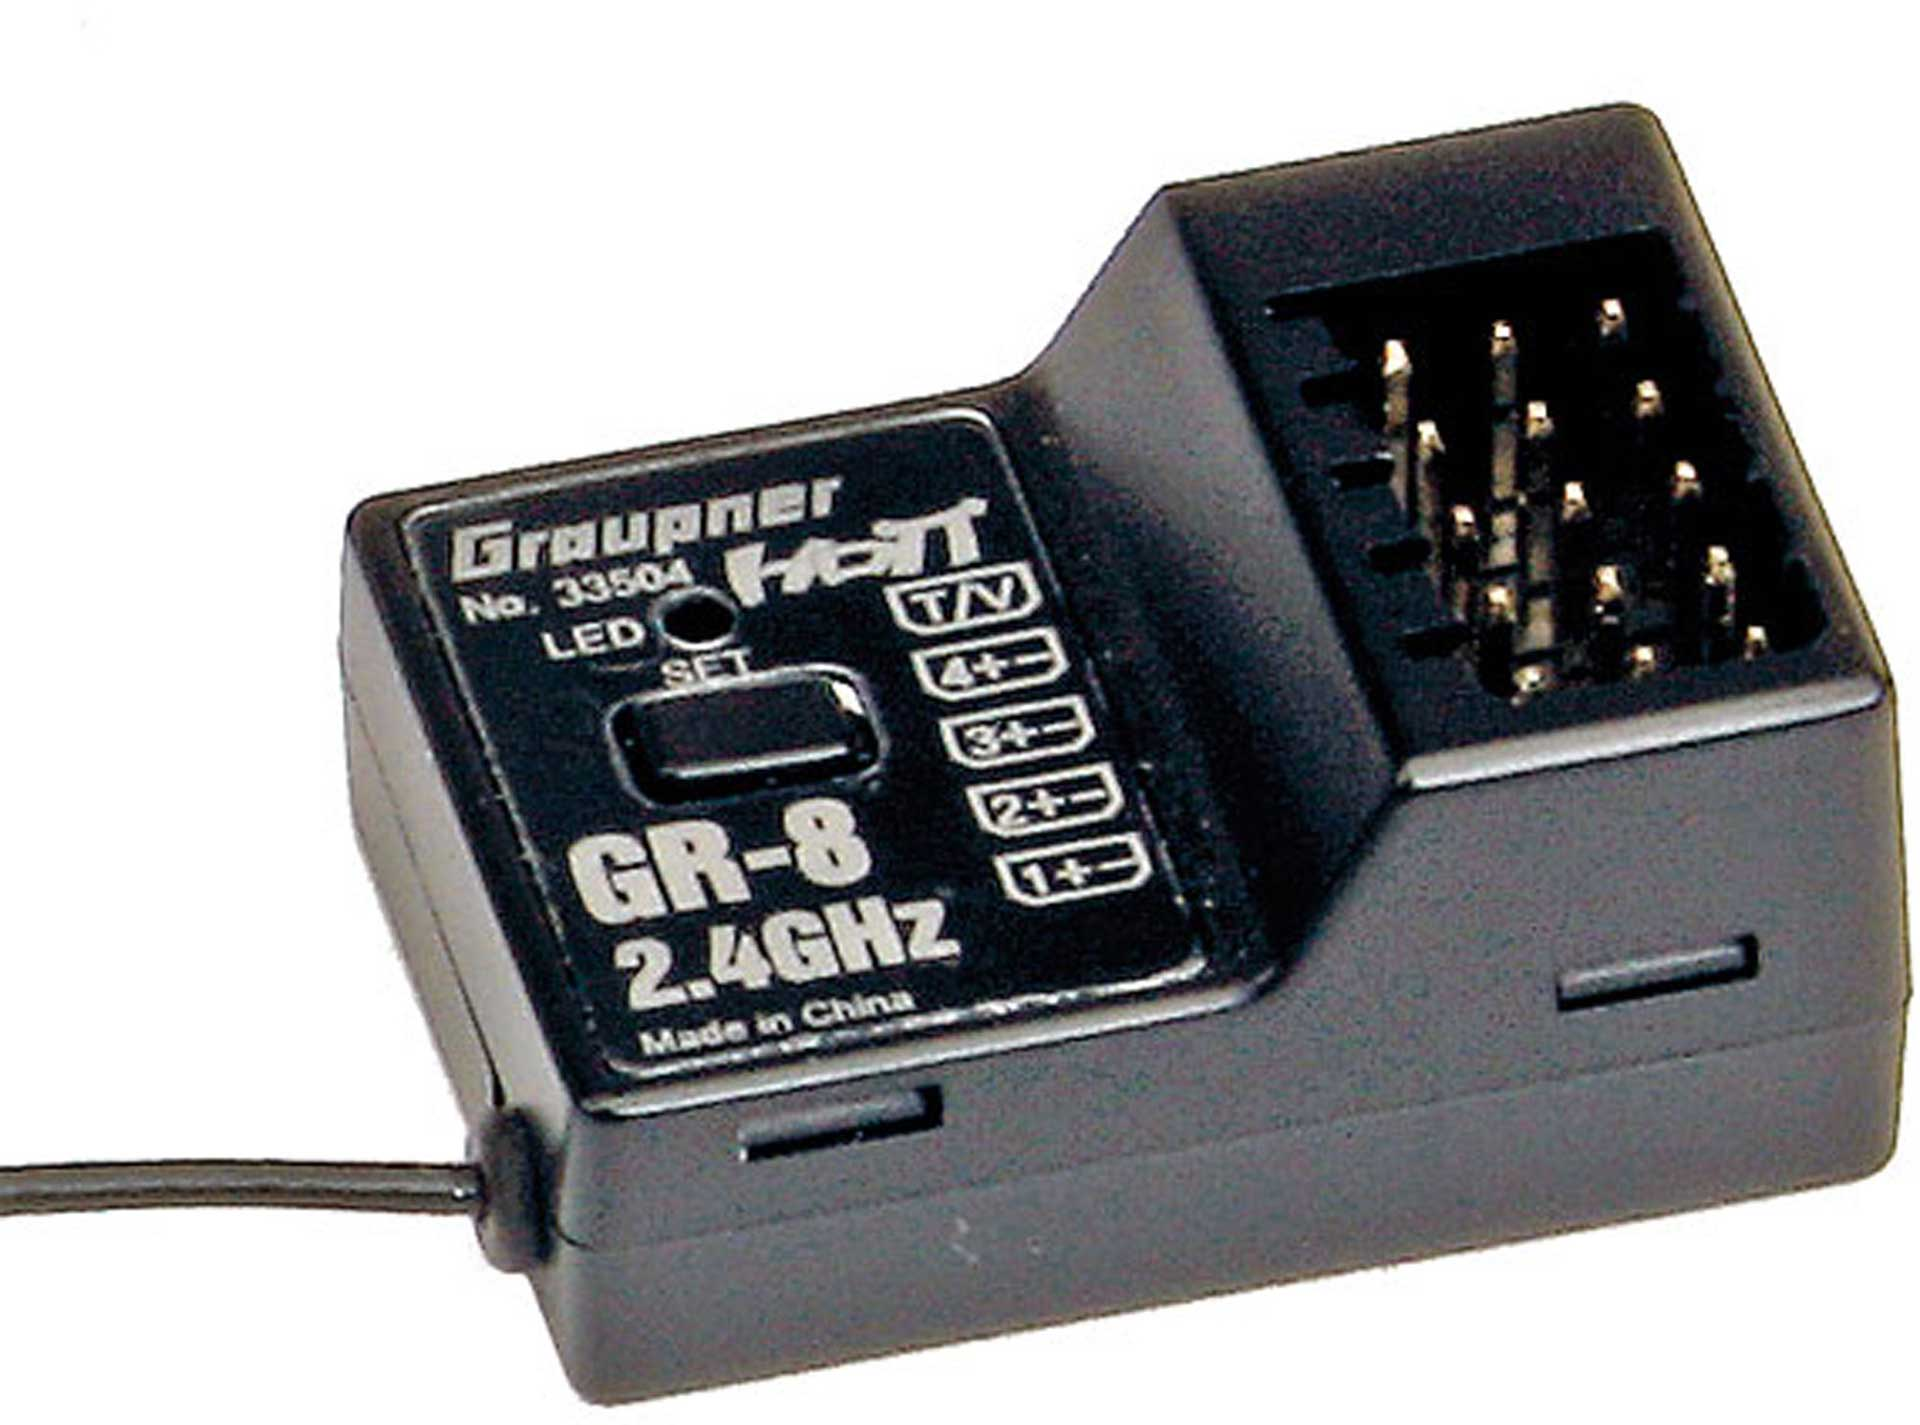 GRAUPNER RECEIVER GR-8 HOTT 2.4 GHZ RACE 4 CHANNL